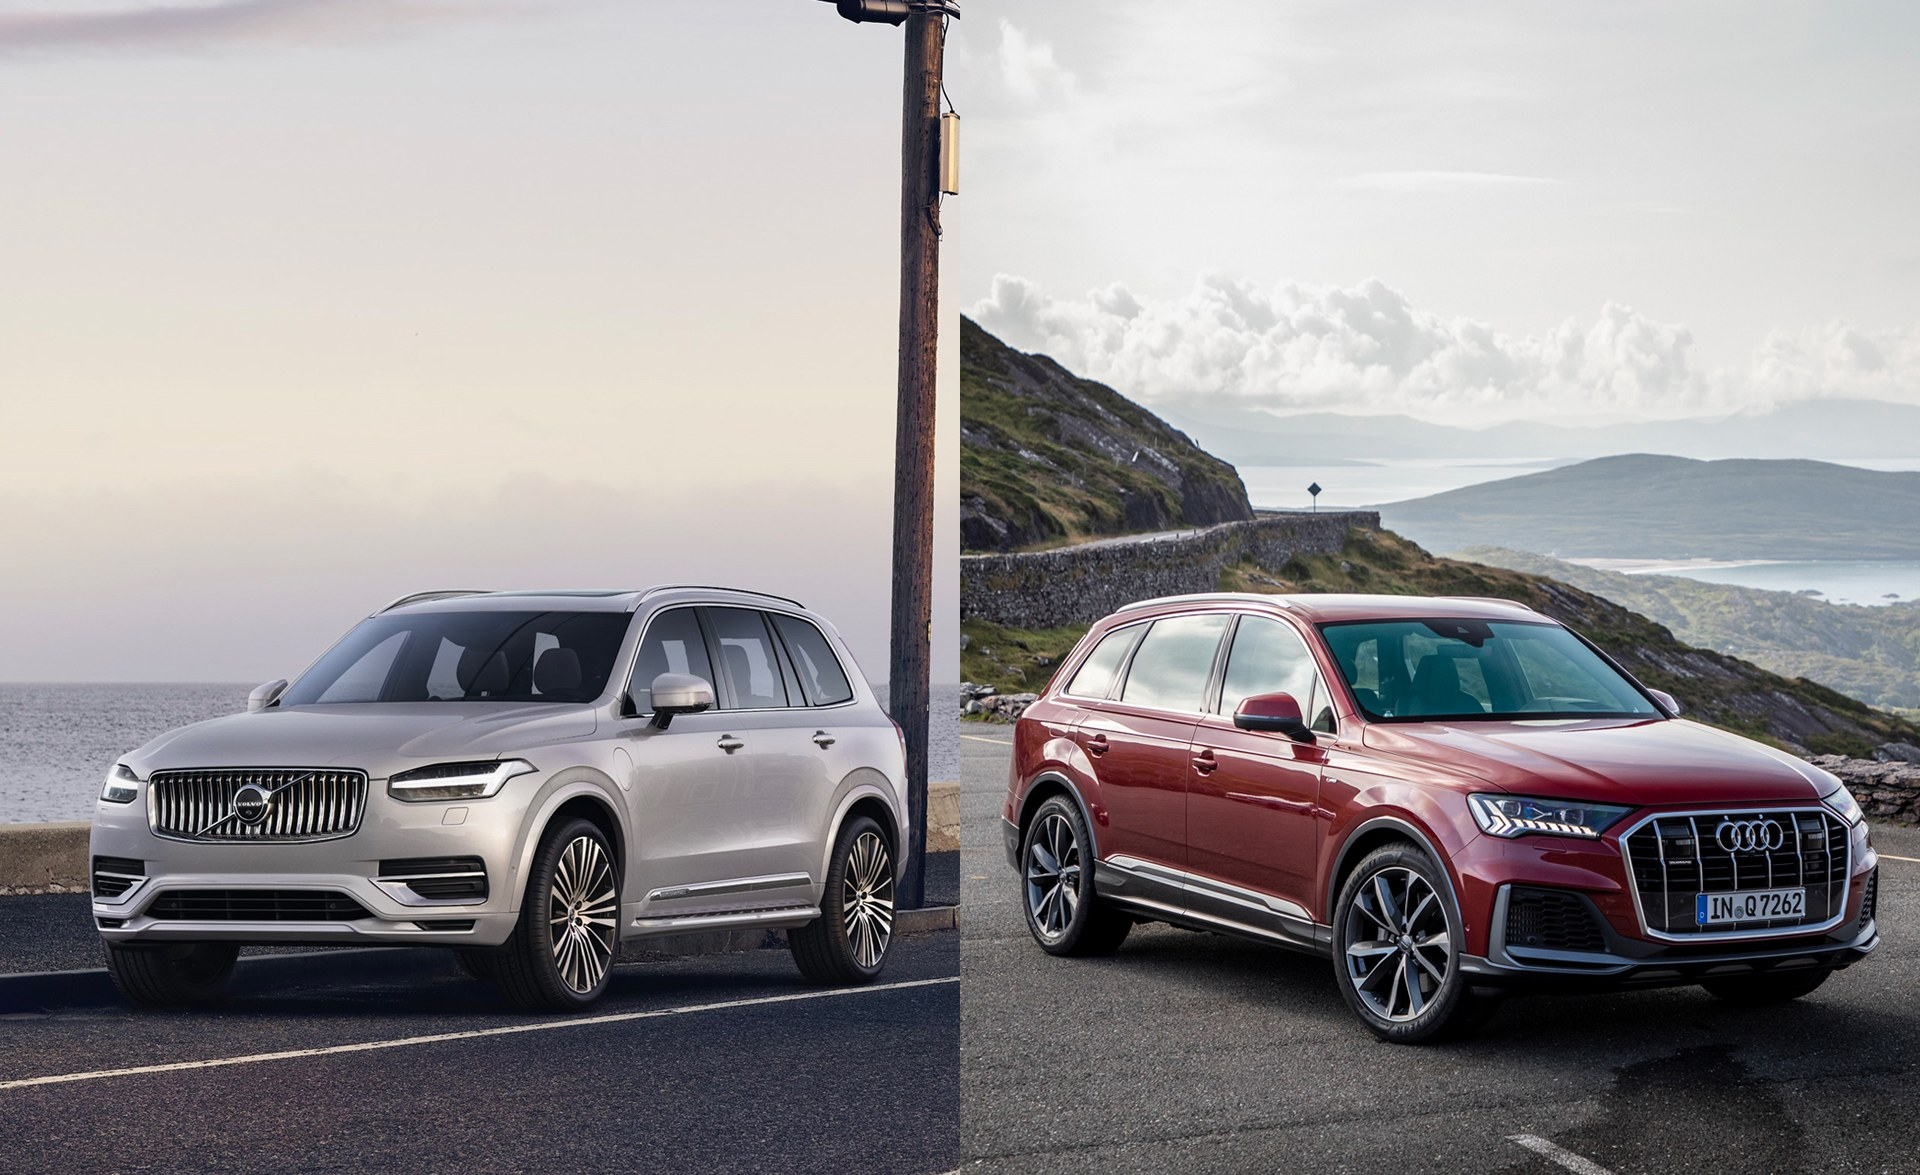 volvo xc90 vs audi q7: which suv is best for you